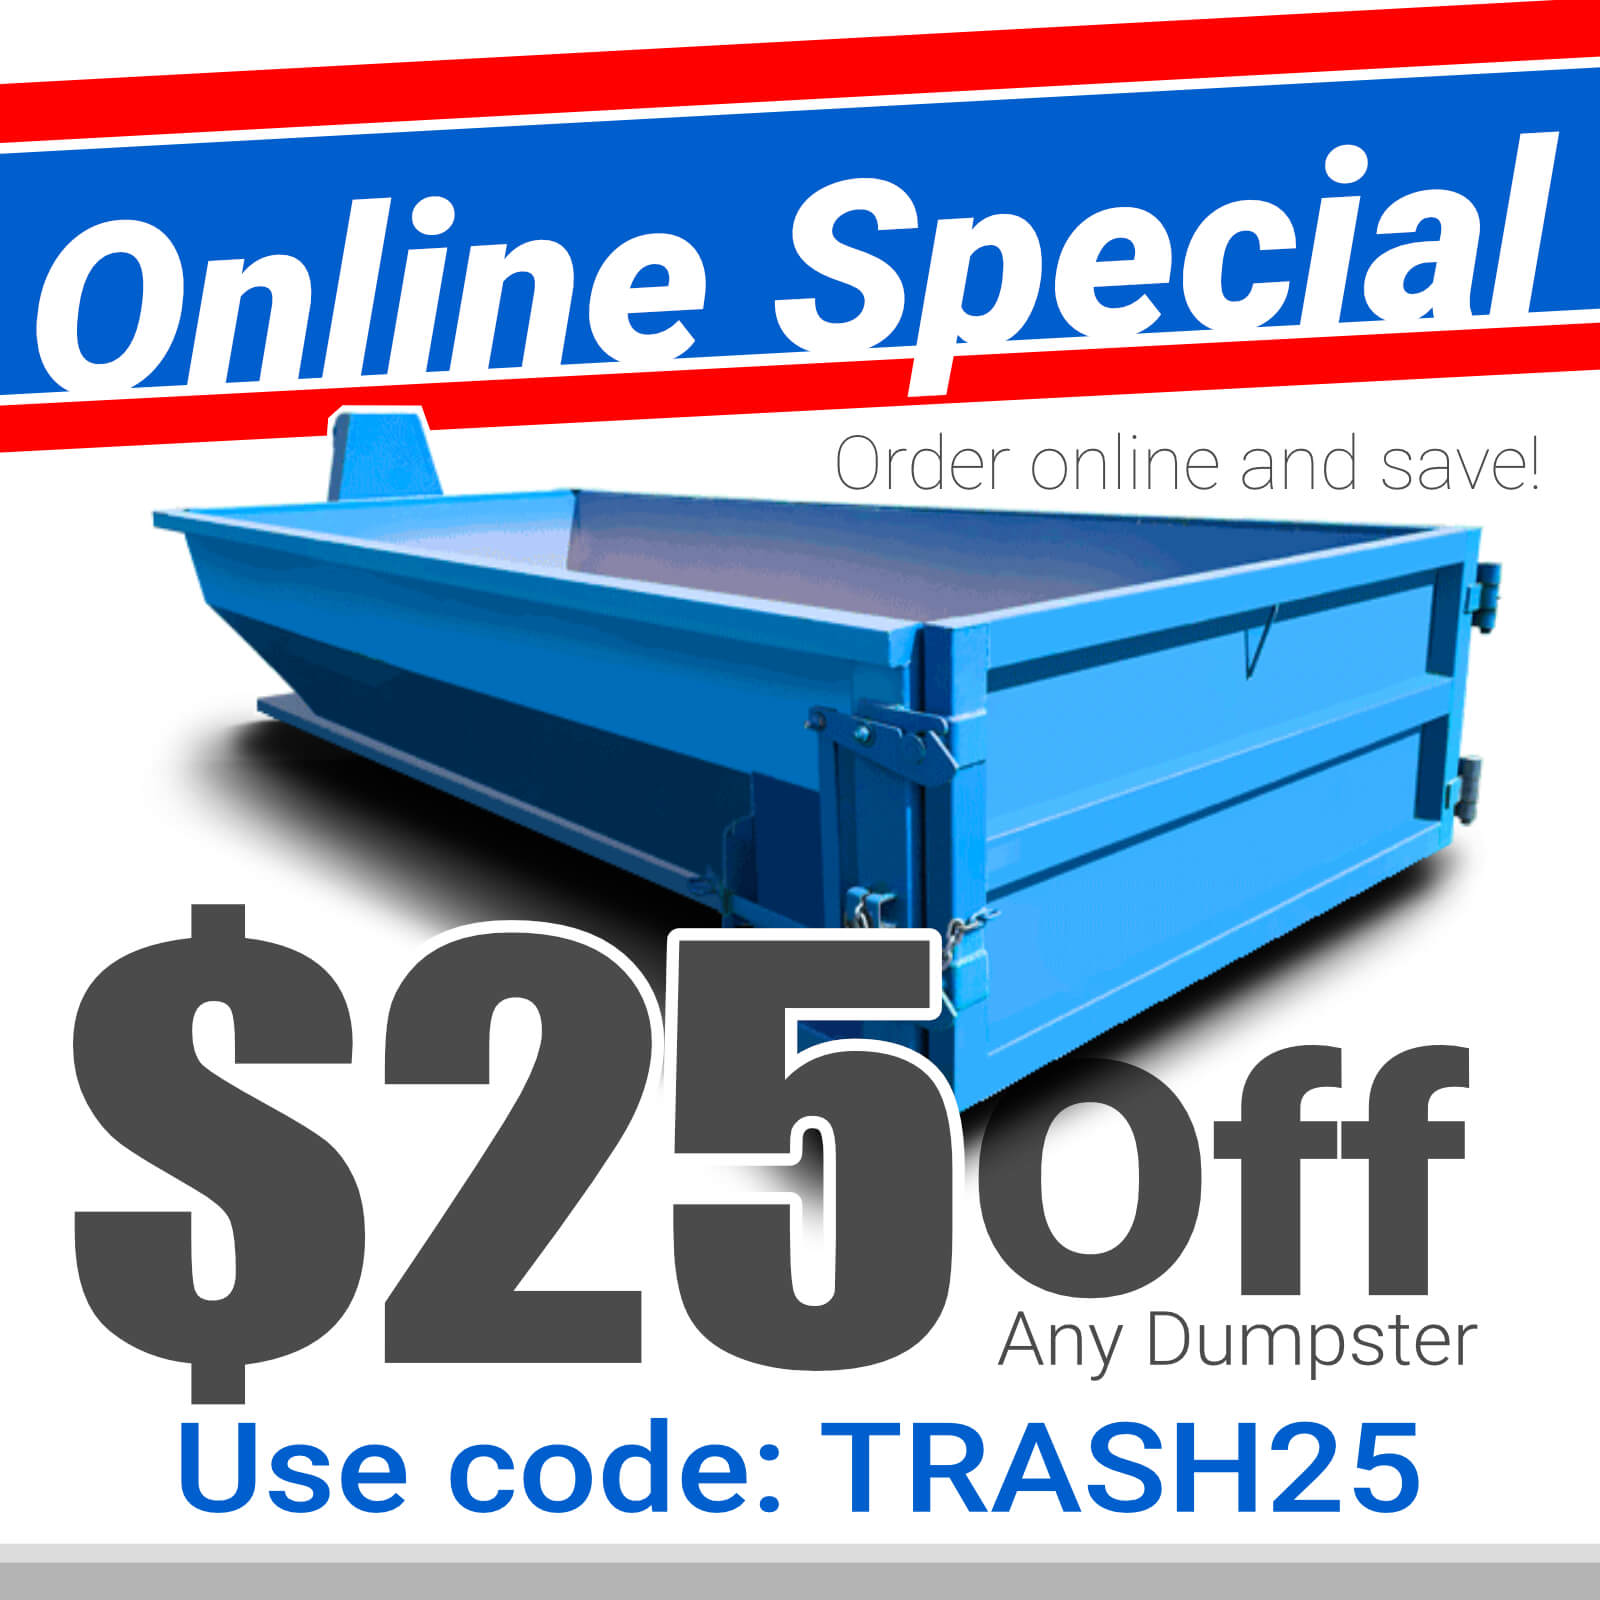 Roll-Off Dumpster - Special Online Discount